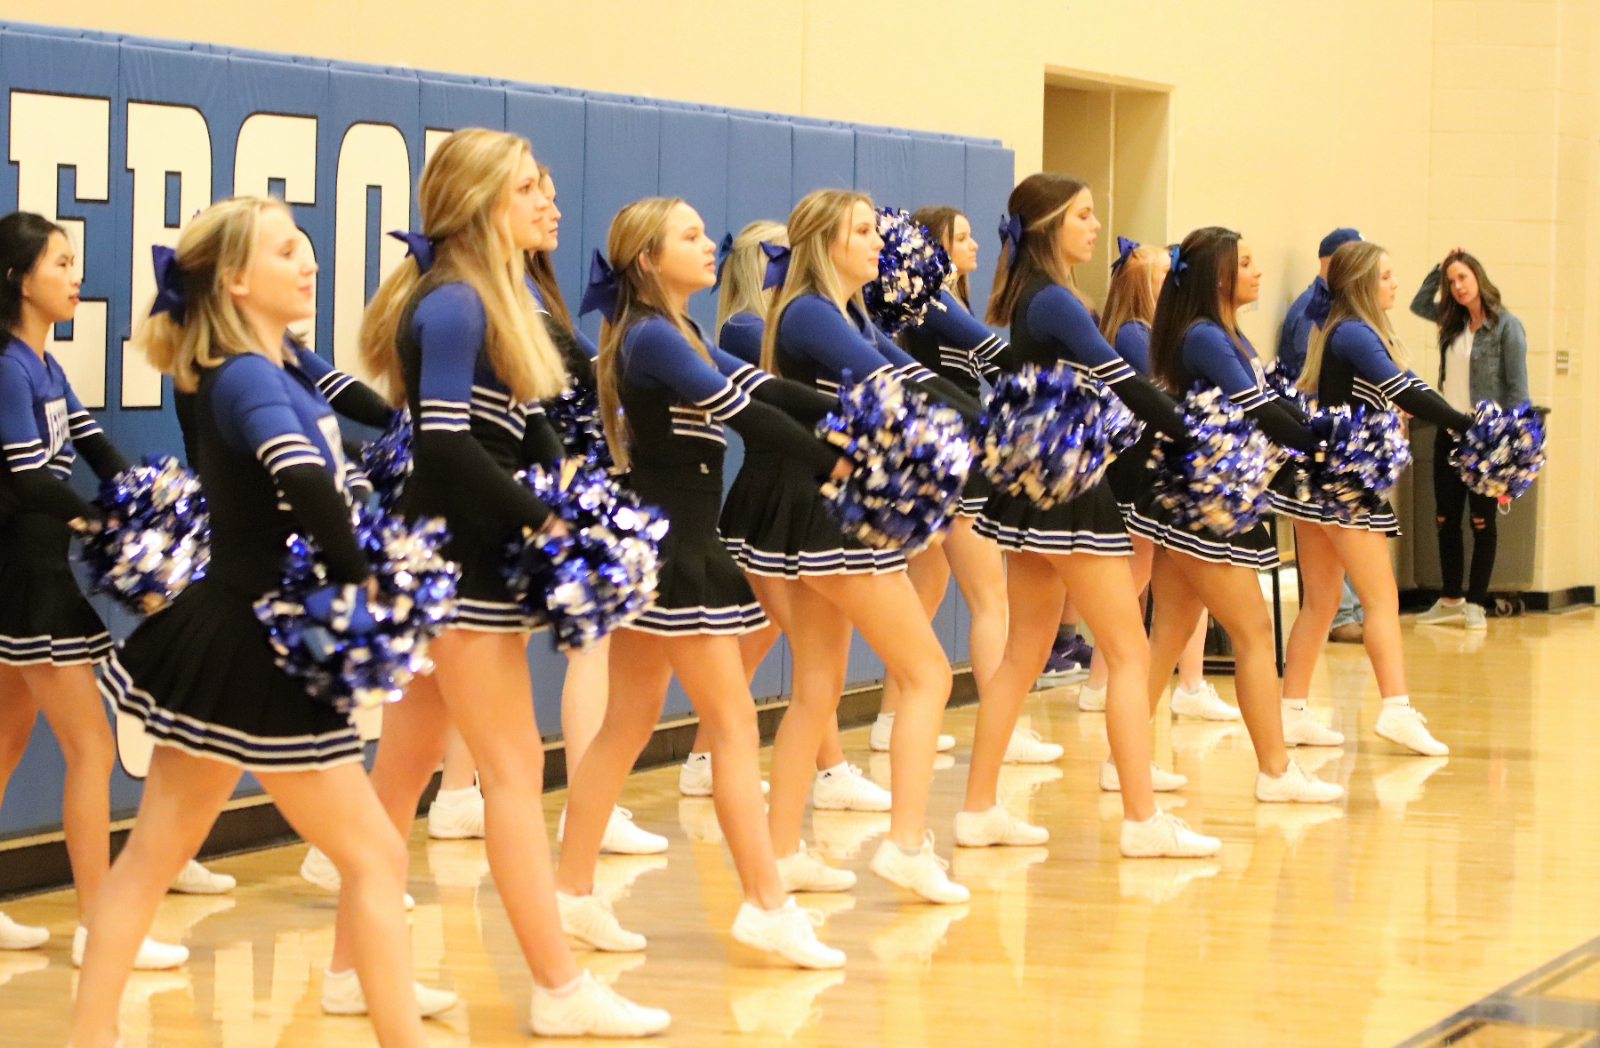 Winter Cheer at the West County Boys' Basketball Game